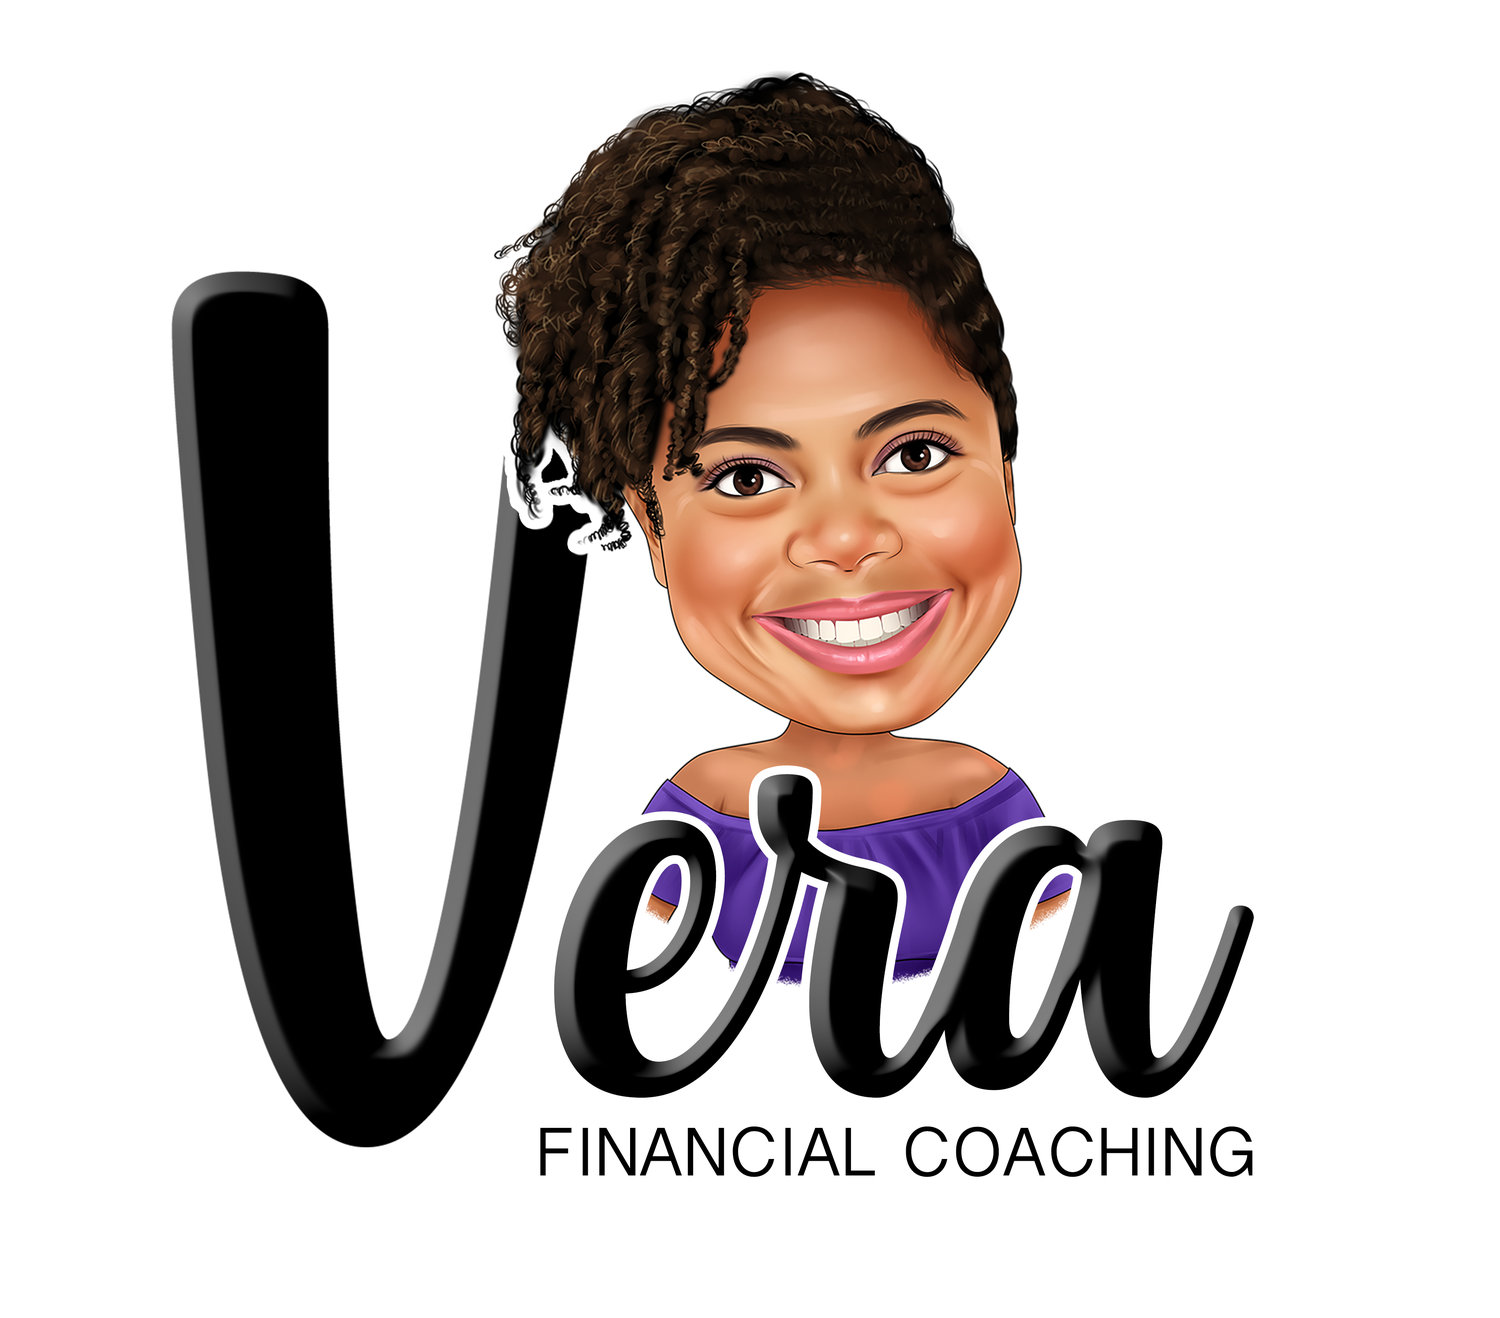 Vera Financial Coaching